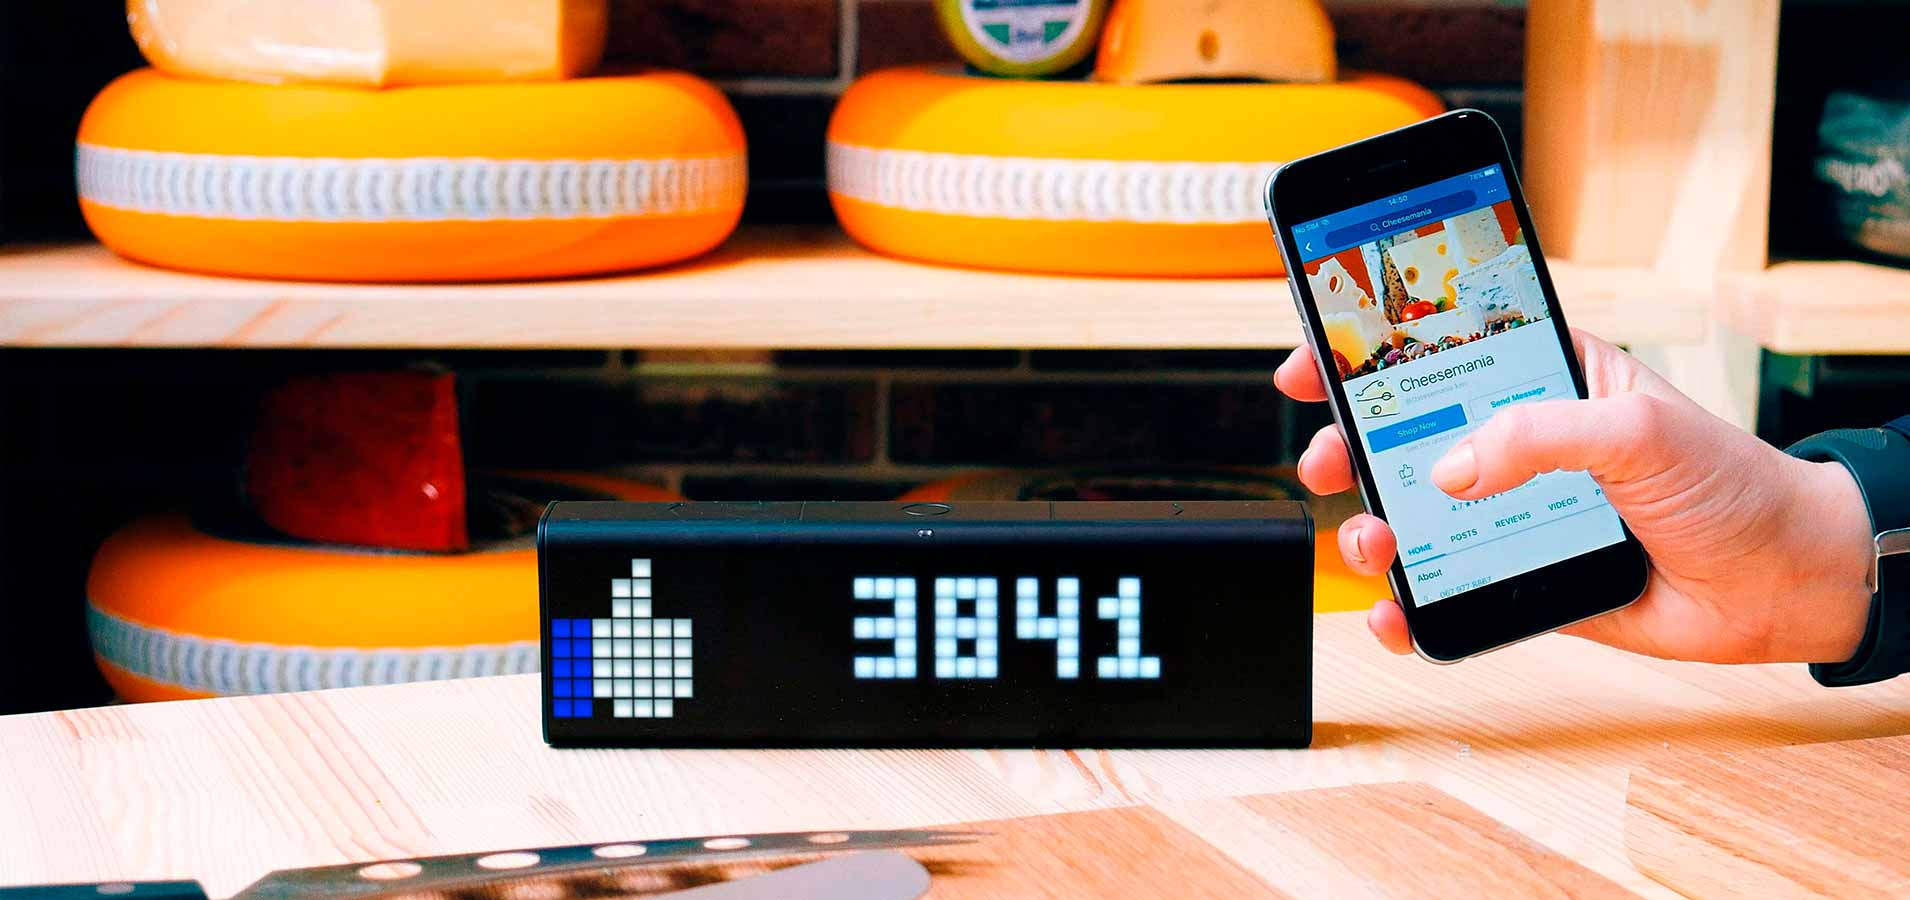 LaMetric Time smart clock for home and business in its' giftbox depicted as a perfect gift for co-workers and employees